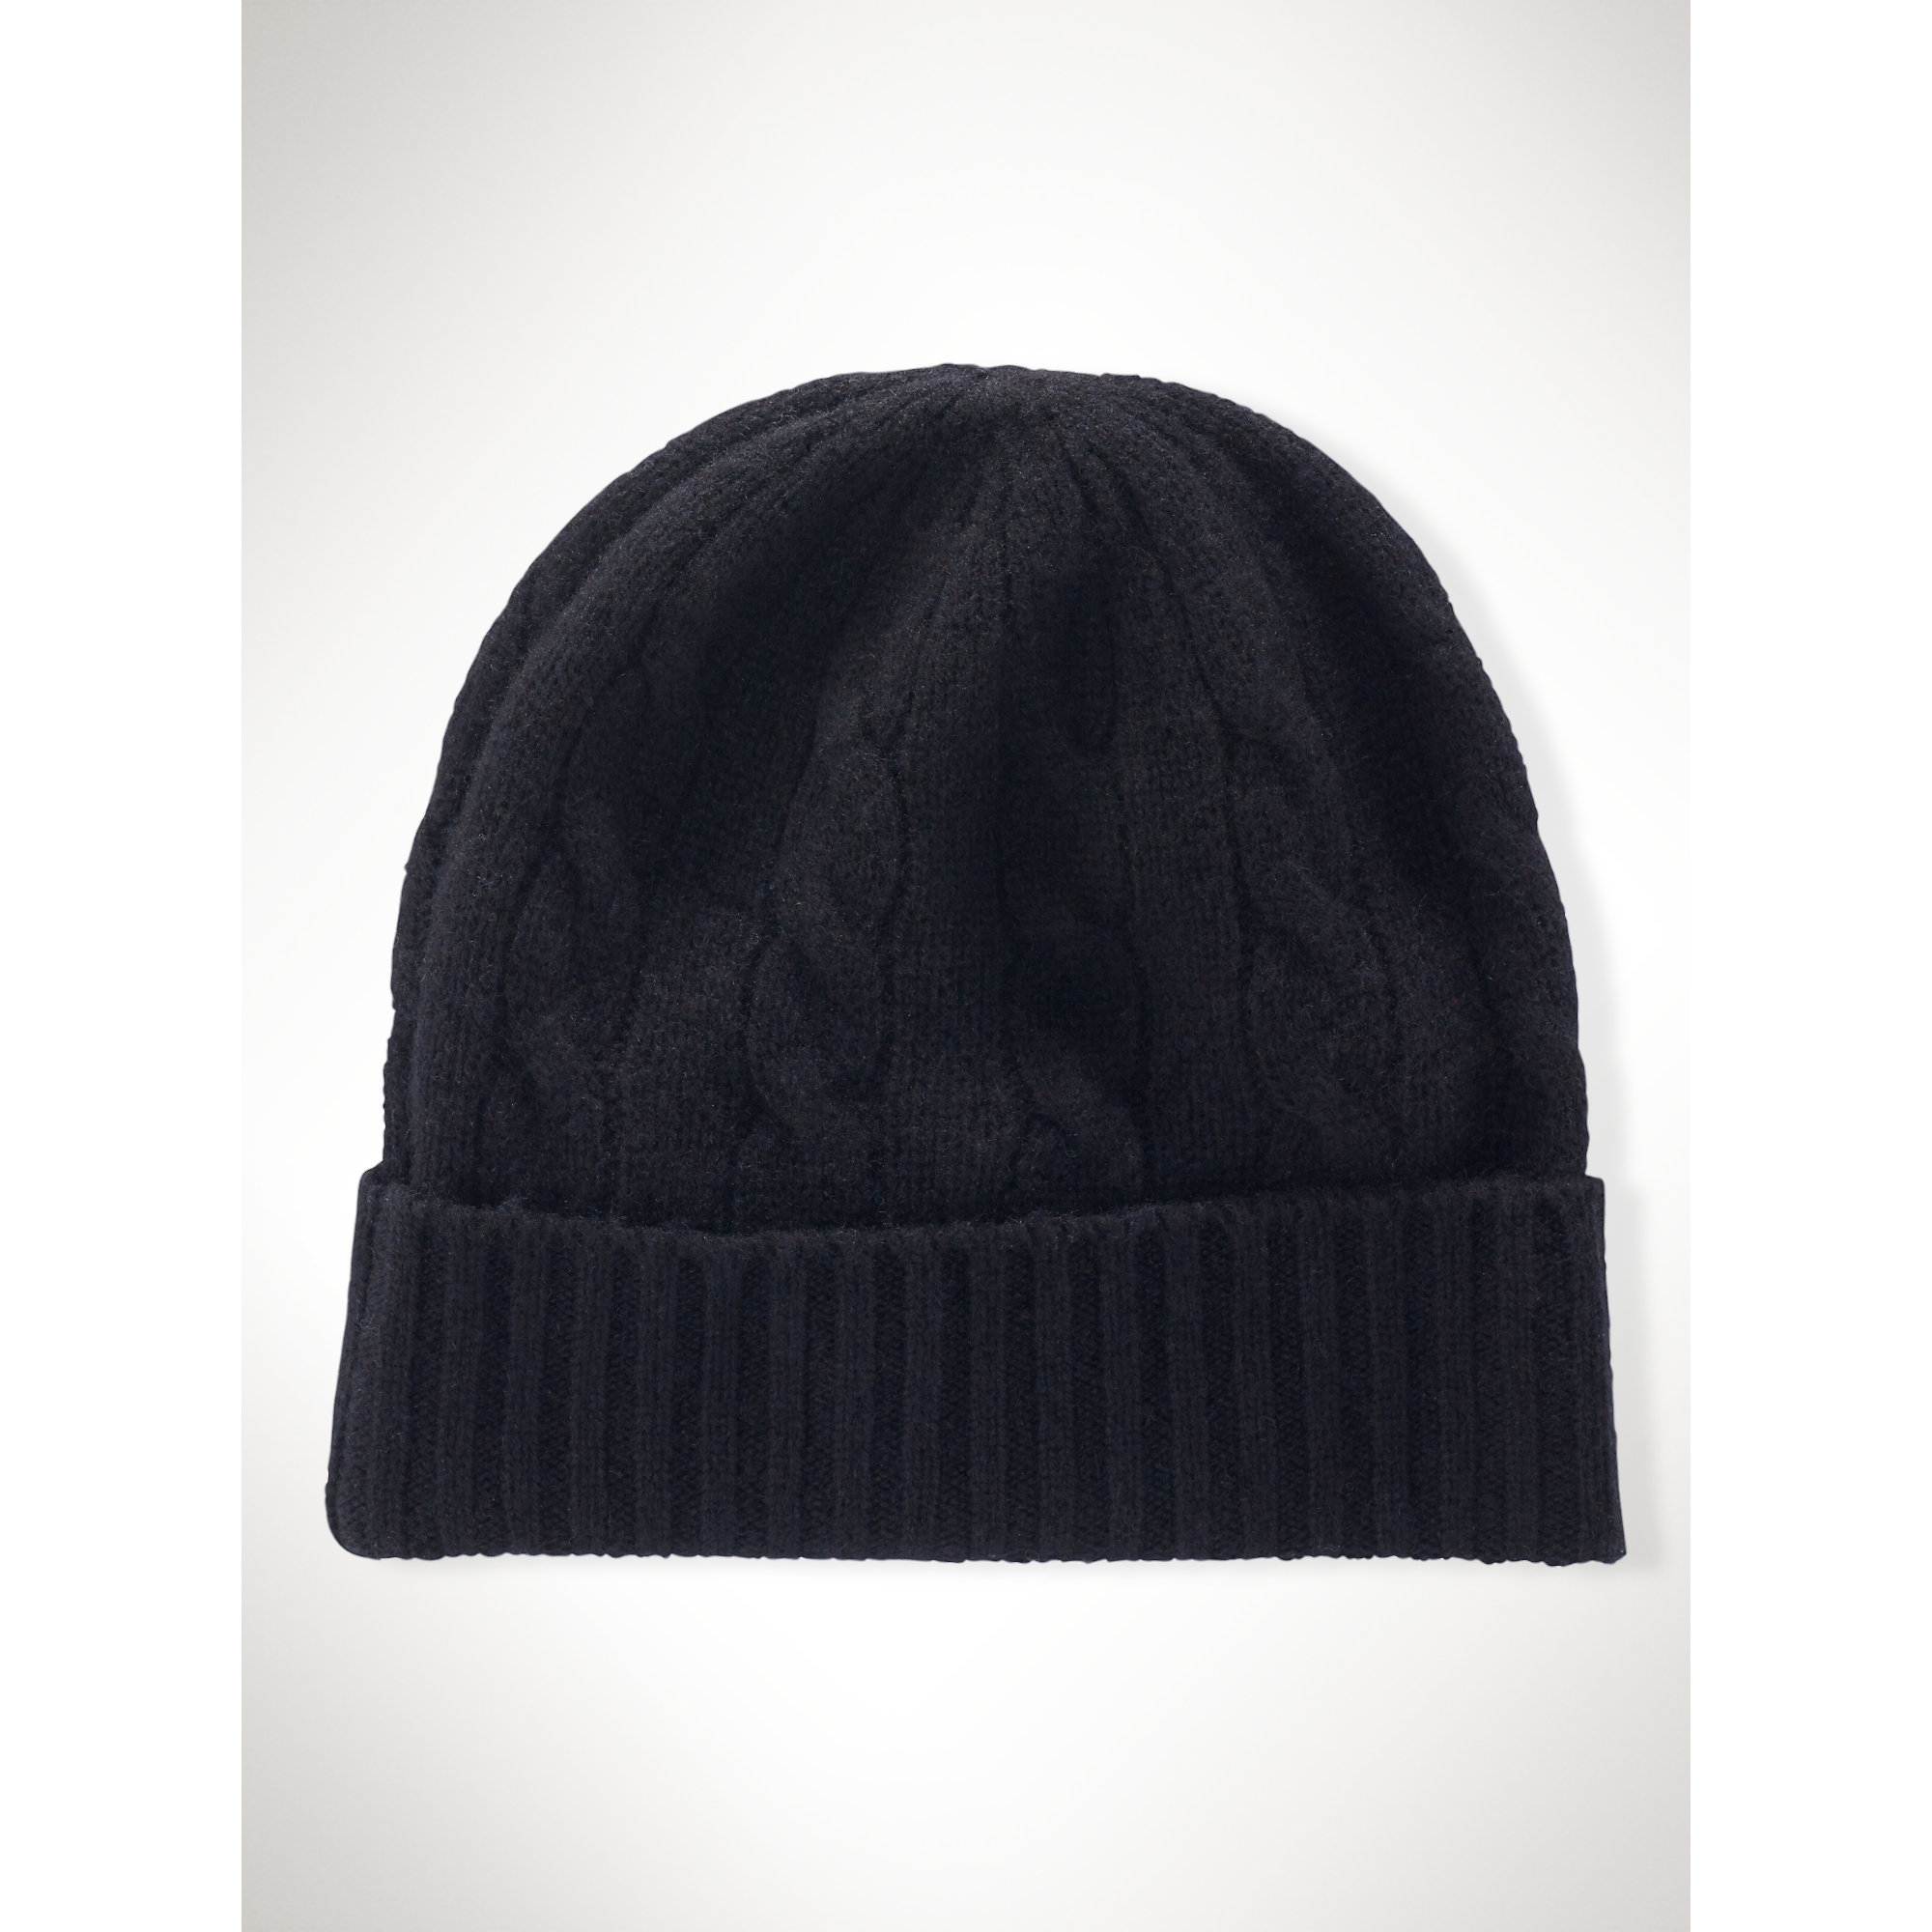 Lyst - Polo Ralph Lauren Cable-Knit Cashmere Hat in Black 48cd4757b2f